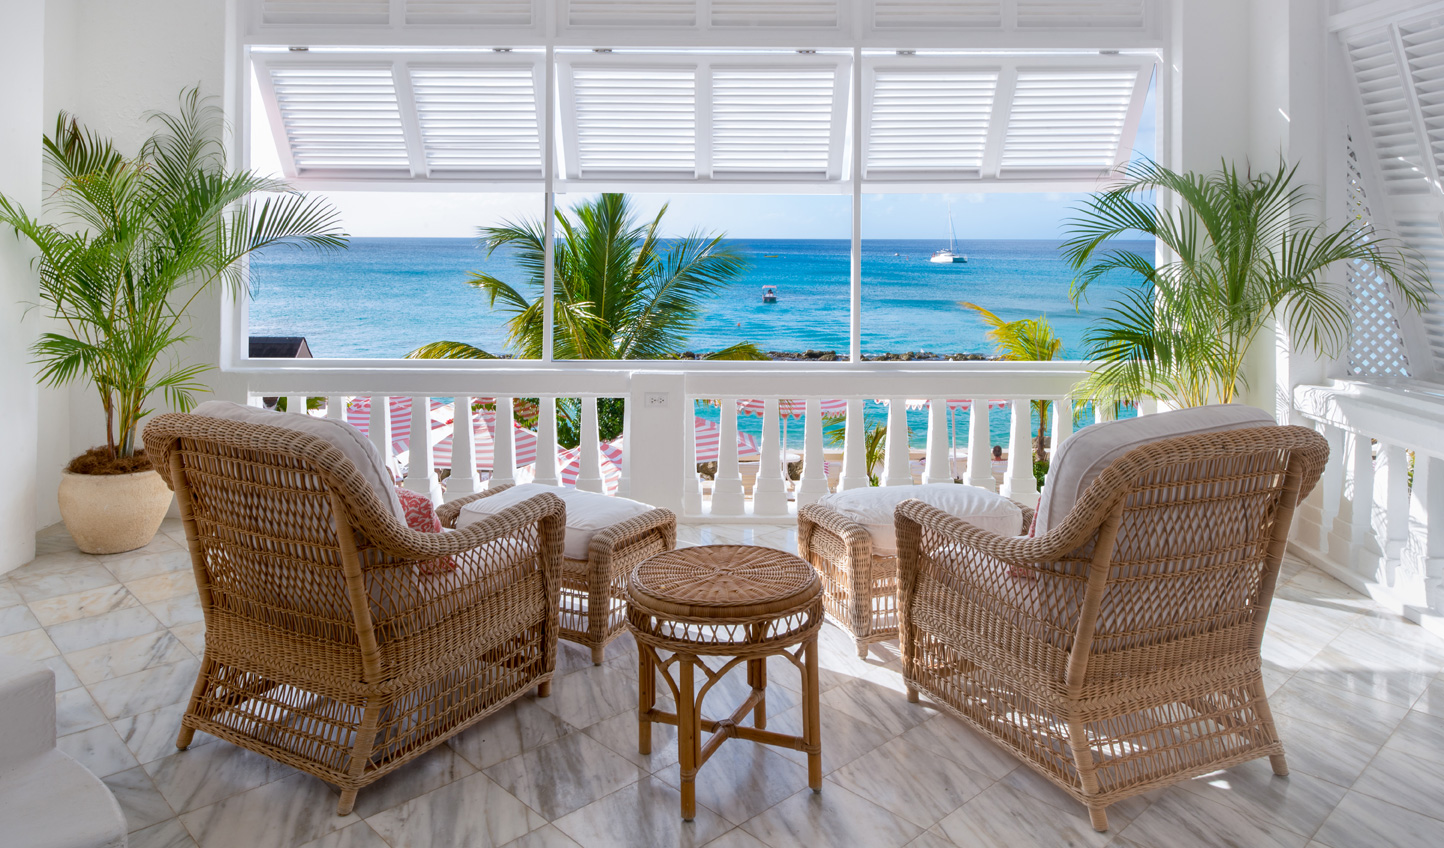 Wake up to views of azure seas